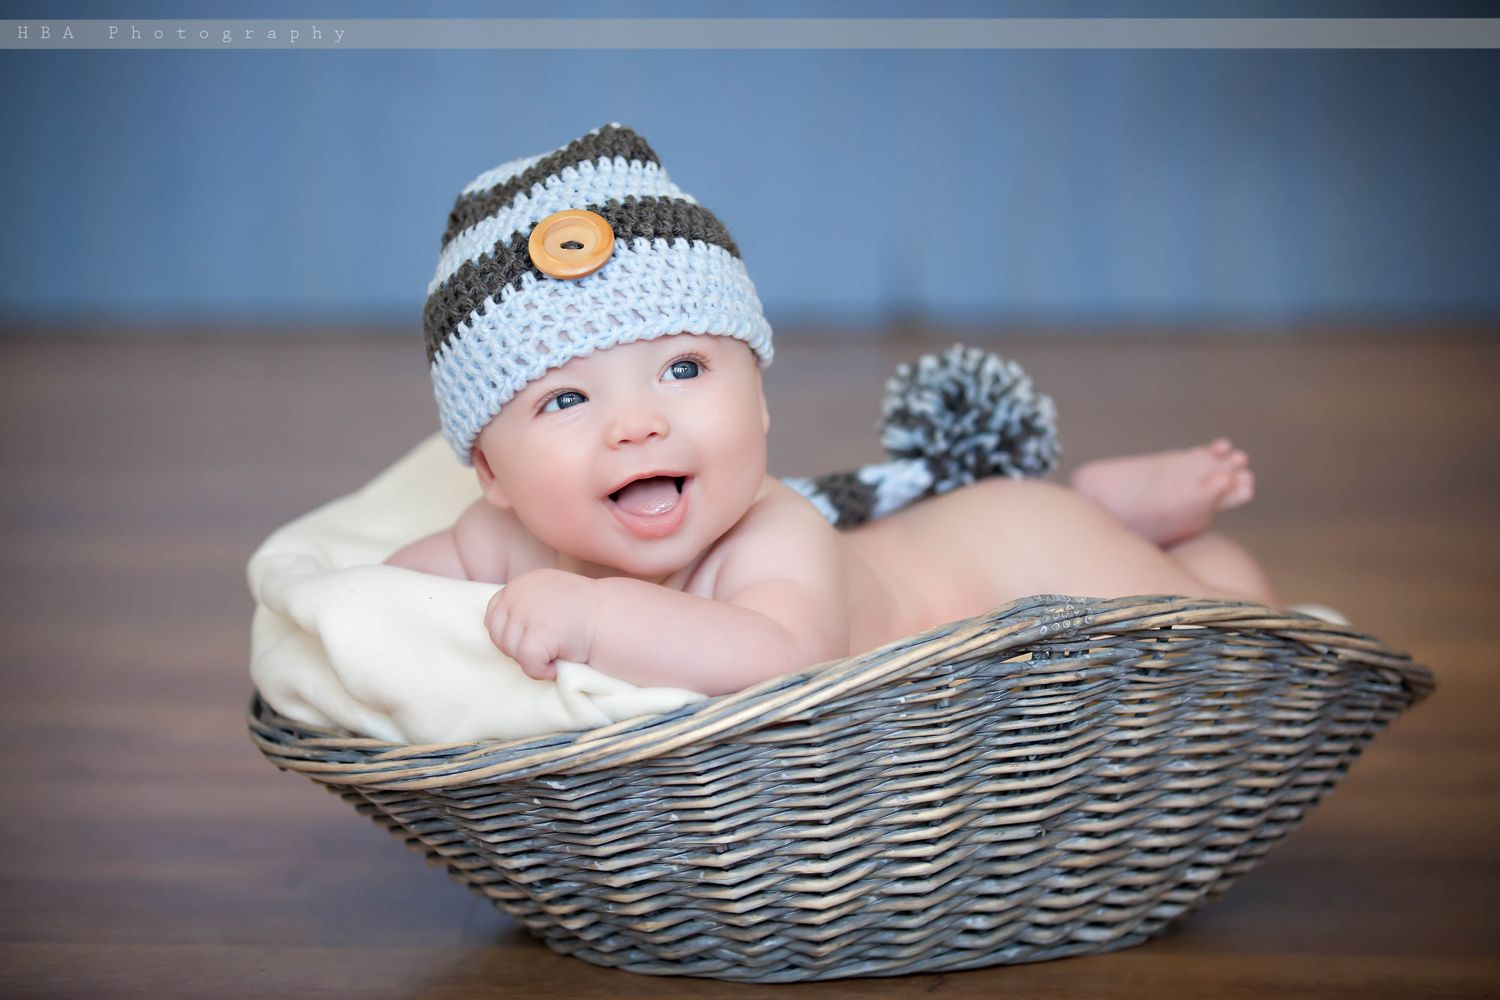 ethans baby photoshoot with hba photography oh baby. Black Bedroom Furniture Sets. Home Design Ideas